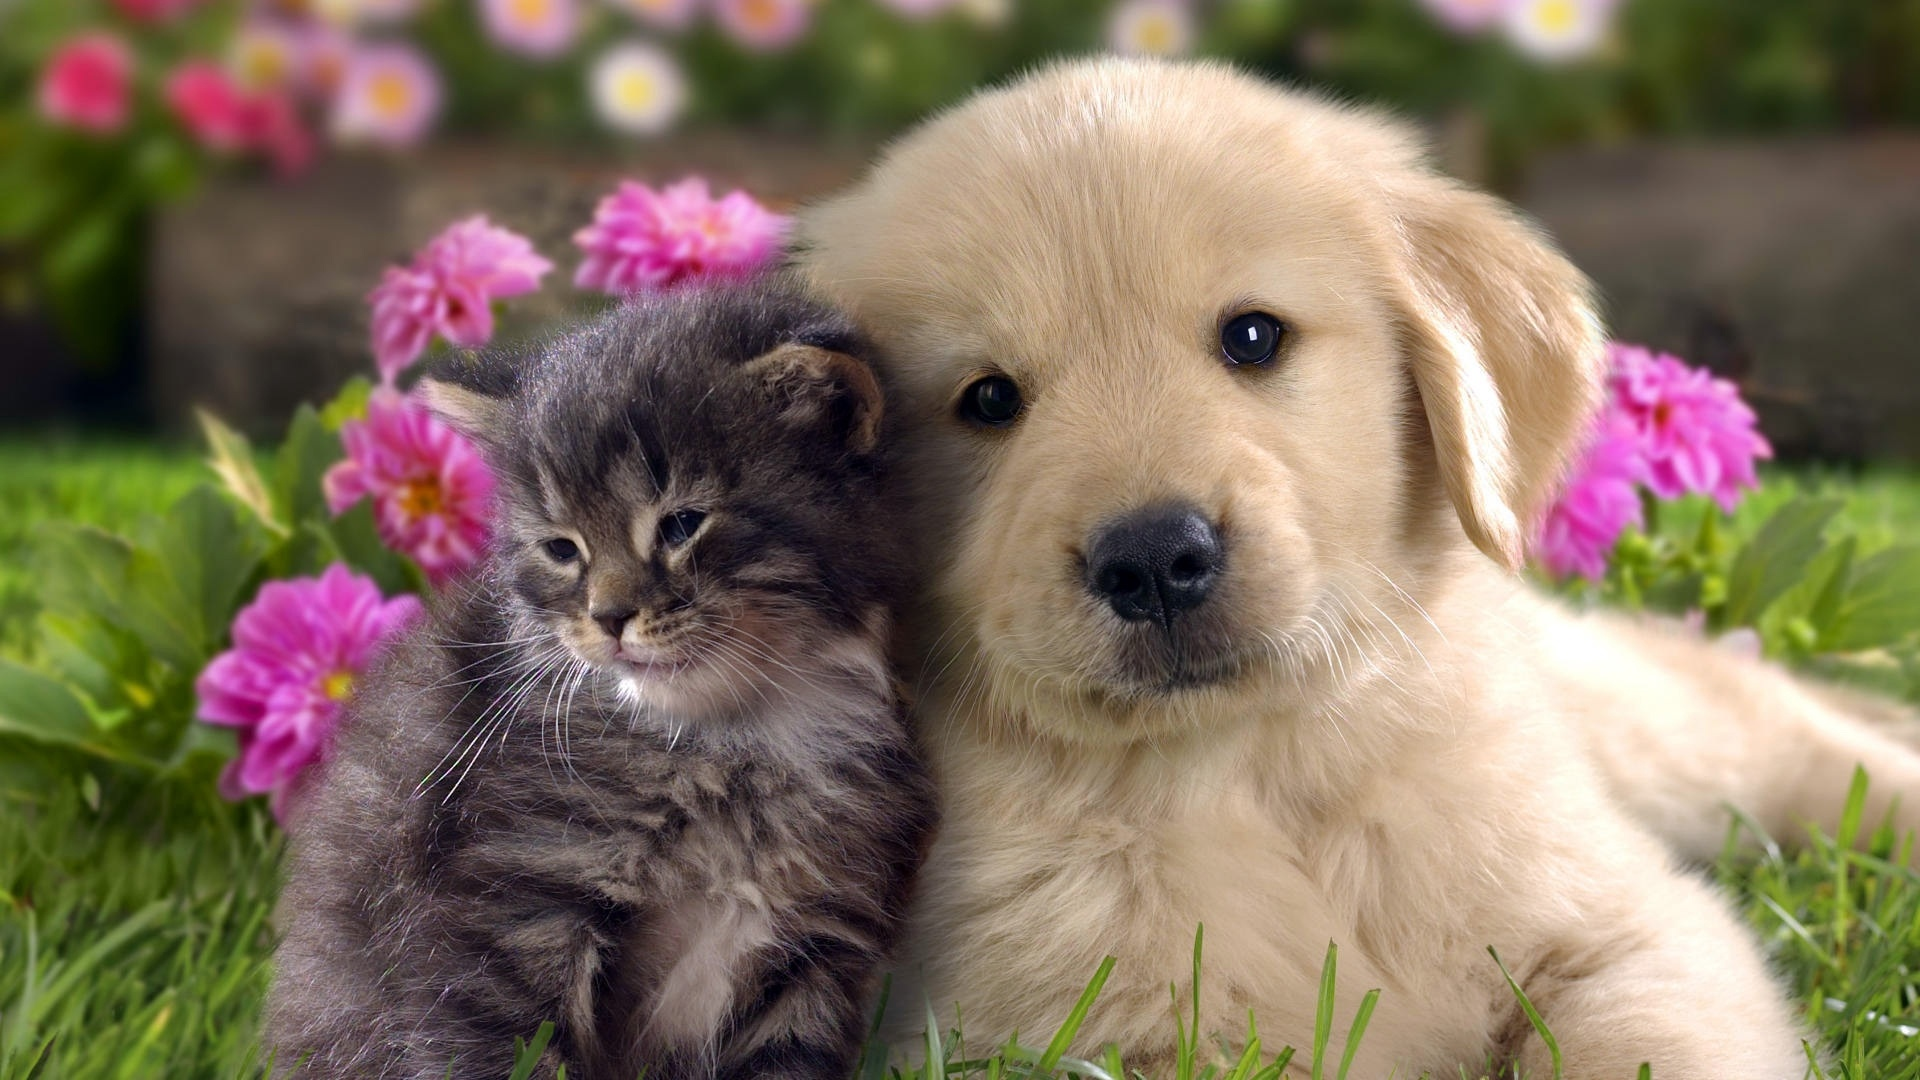 Sweet Dog And Cat In The Garden